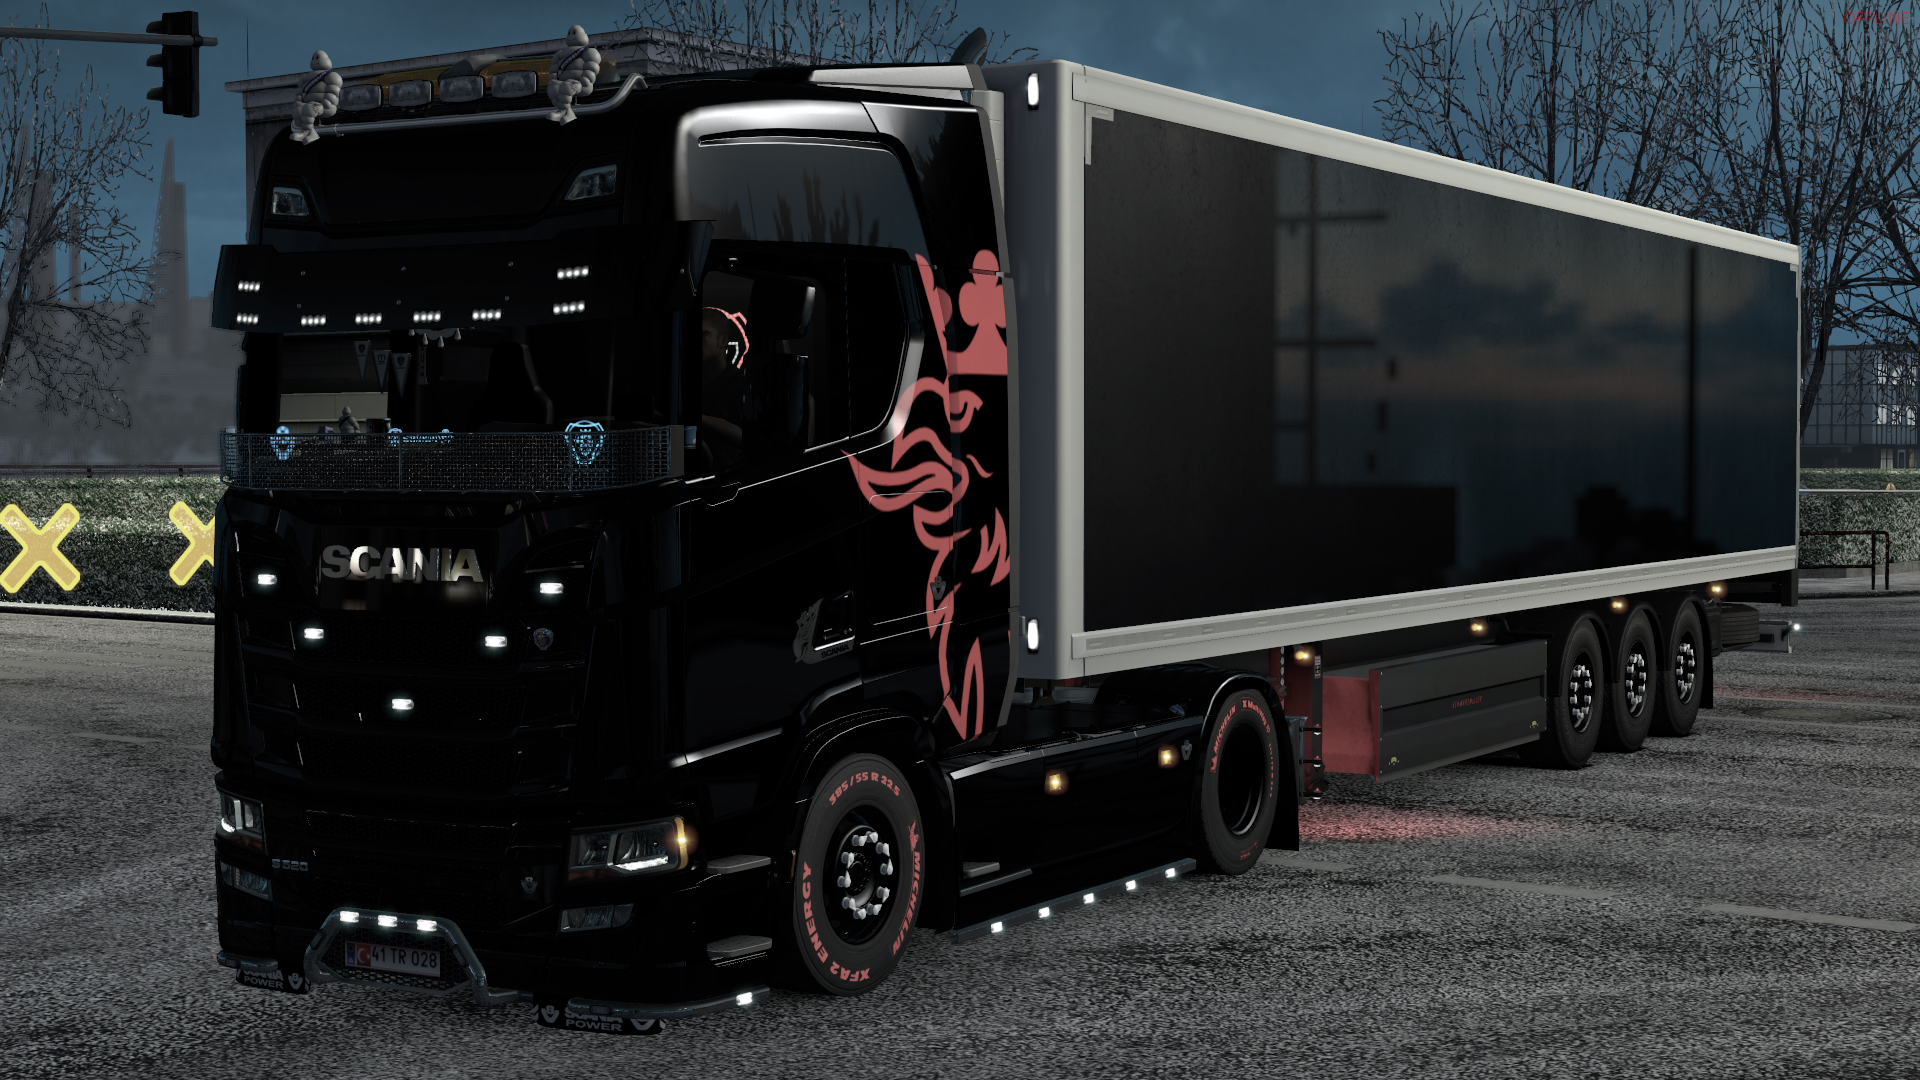 ets2_20190121_232744_00.png